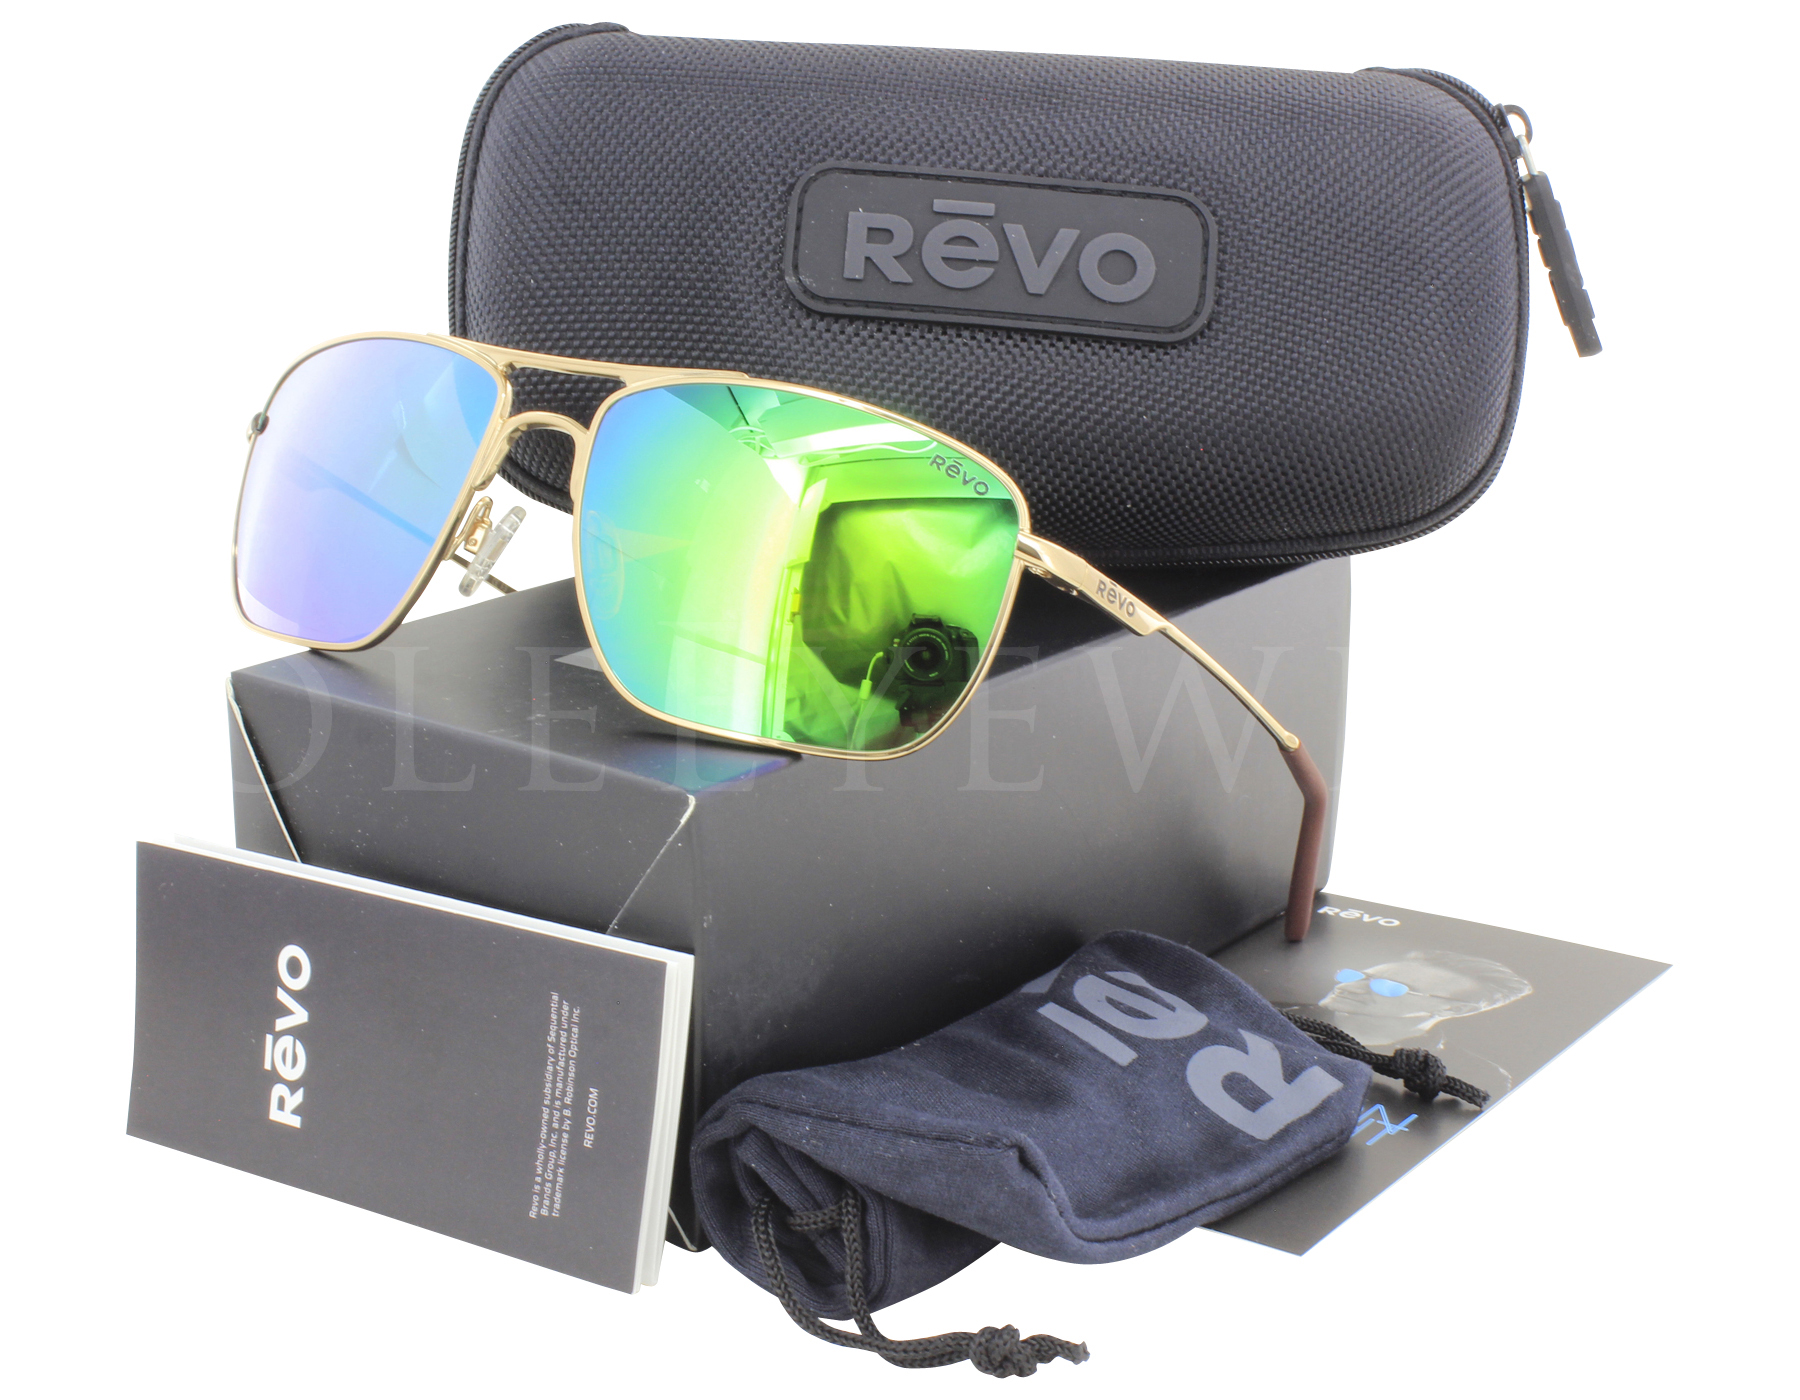 09b9ca0ef8 Details about NEW Revo Groundspeed RE 3089 02 GN Gold   Green Water  Sunglasses